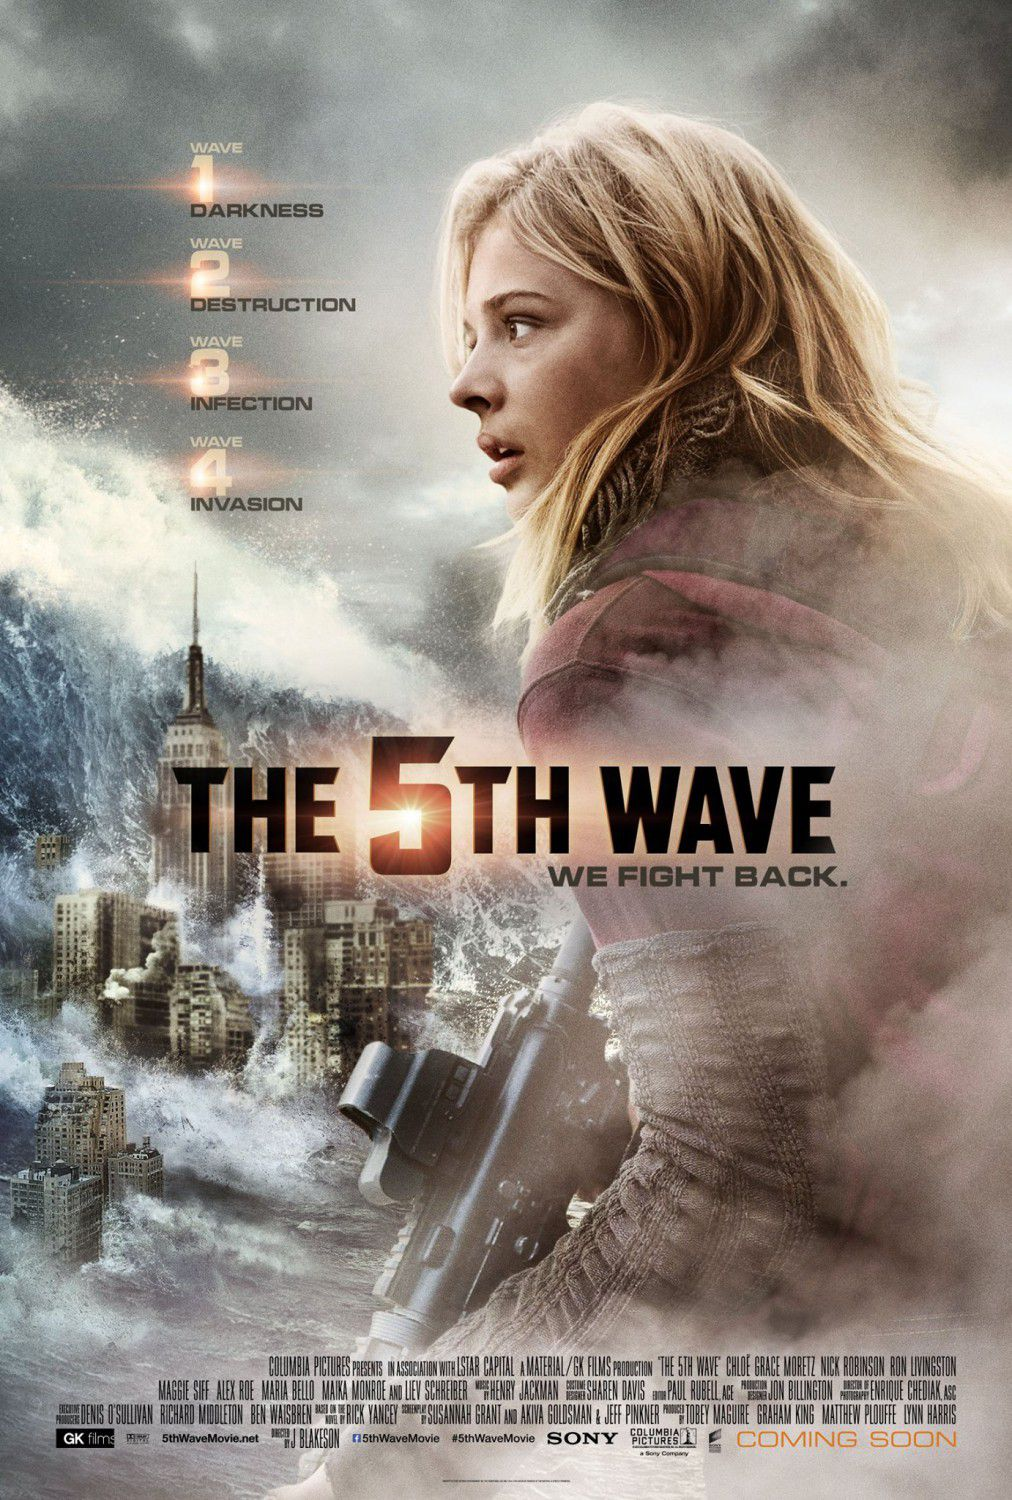 5th Wave - Quinta Onda - Chloe Grace Moretz - film poster